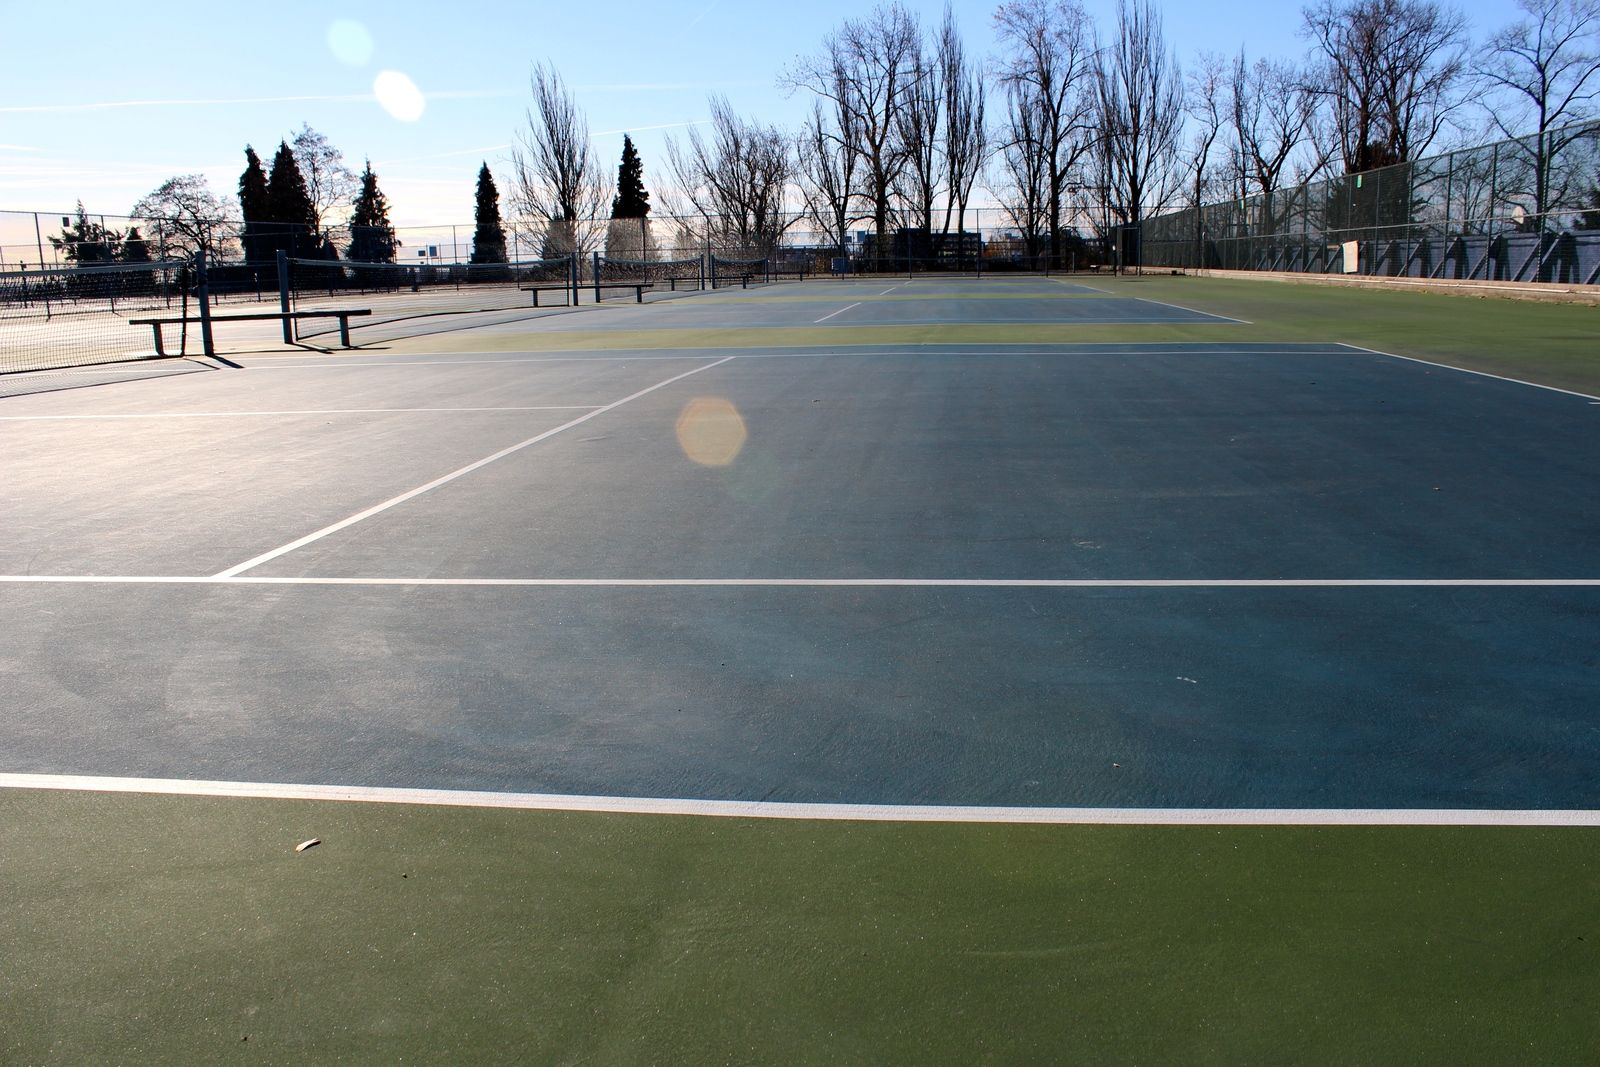 The Courts Are A Very Popular Place To Play And Home Of Queen Elizabeth Park Tennis Club